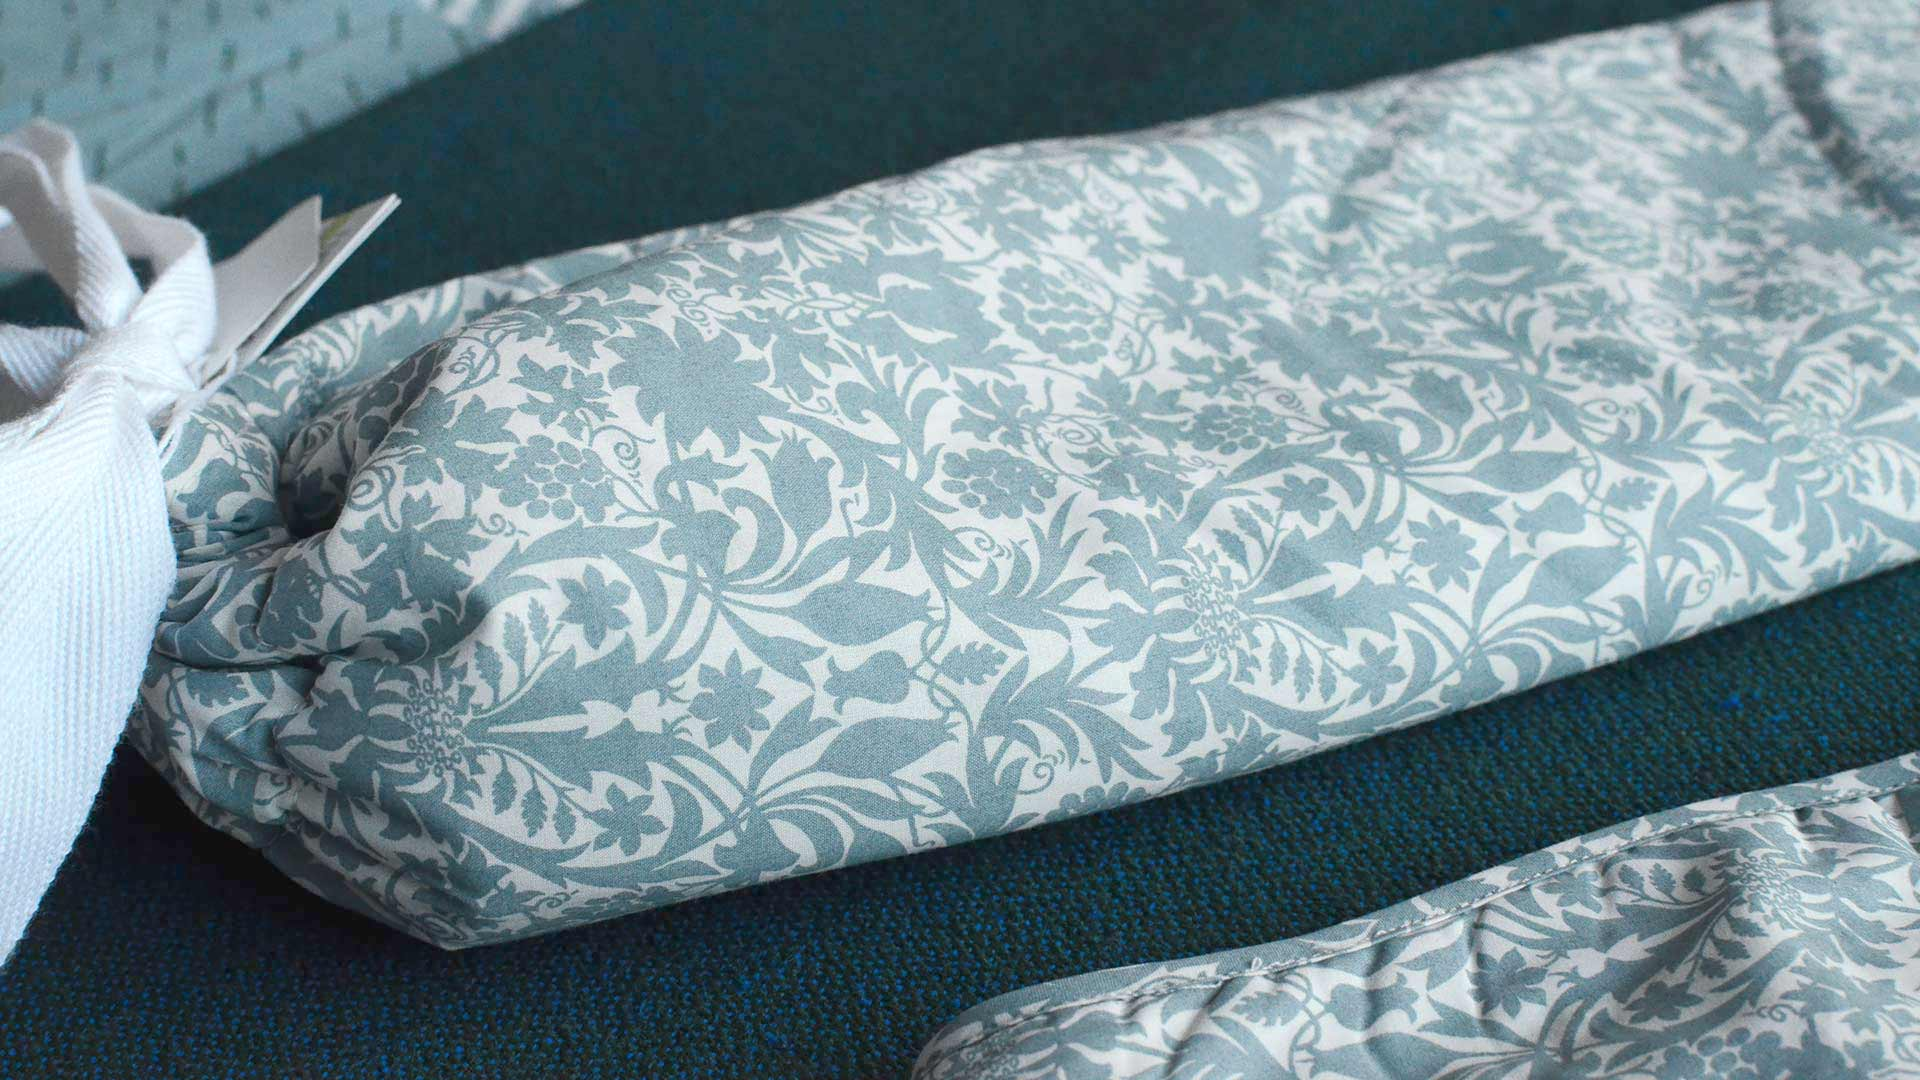 Long therapeutic hotwater bottle with liberty print cotton cover